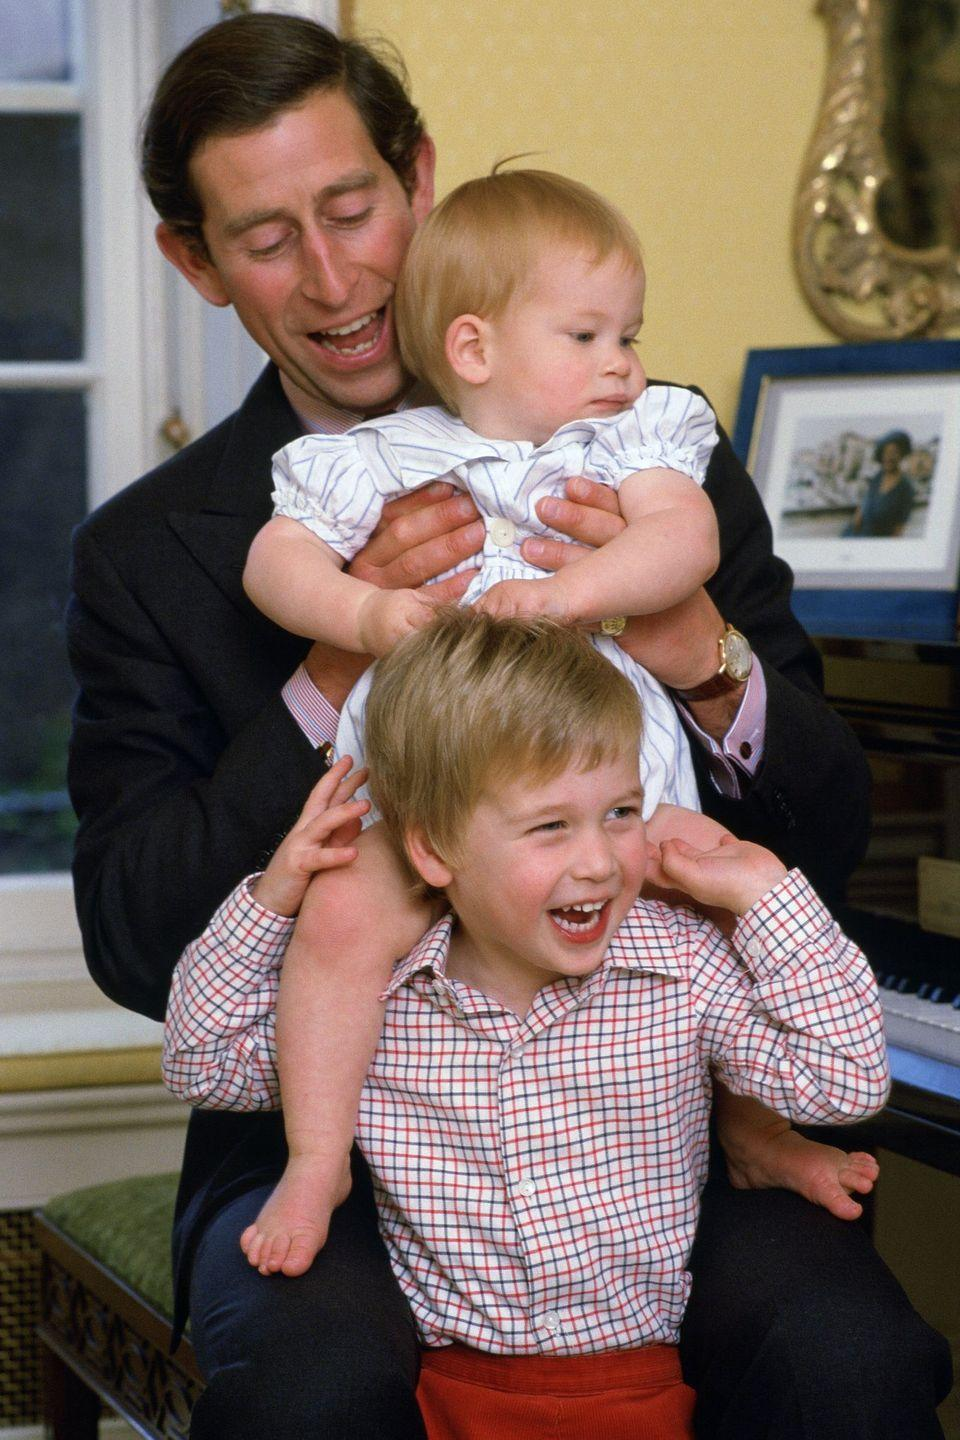 <p>The royal couple welcomed Prince William in 1982 and Prince Harry in 1984. Here, Charles, the Prince of Wales, has a silly moment with his two sons at home in Kensington Palace.</p>